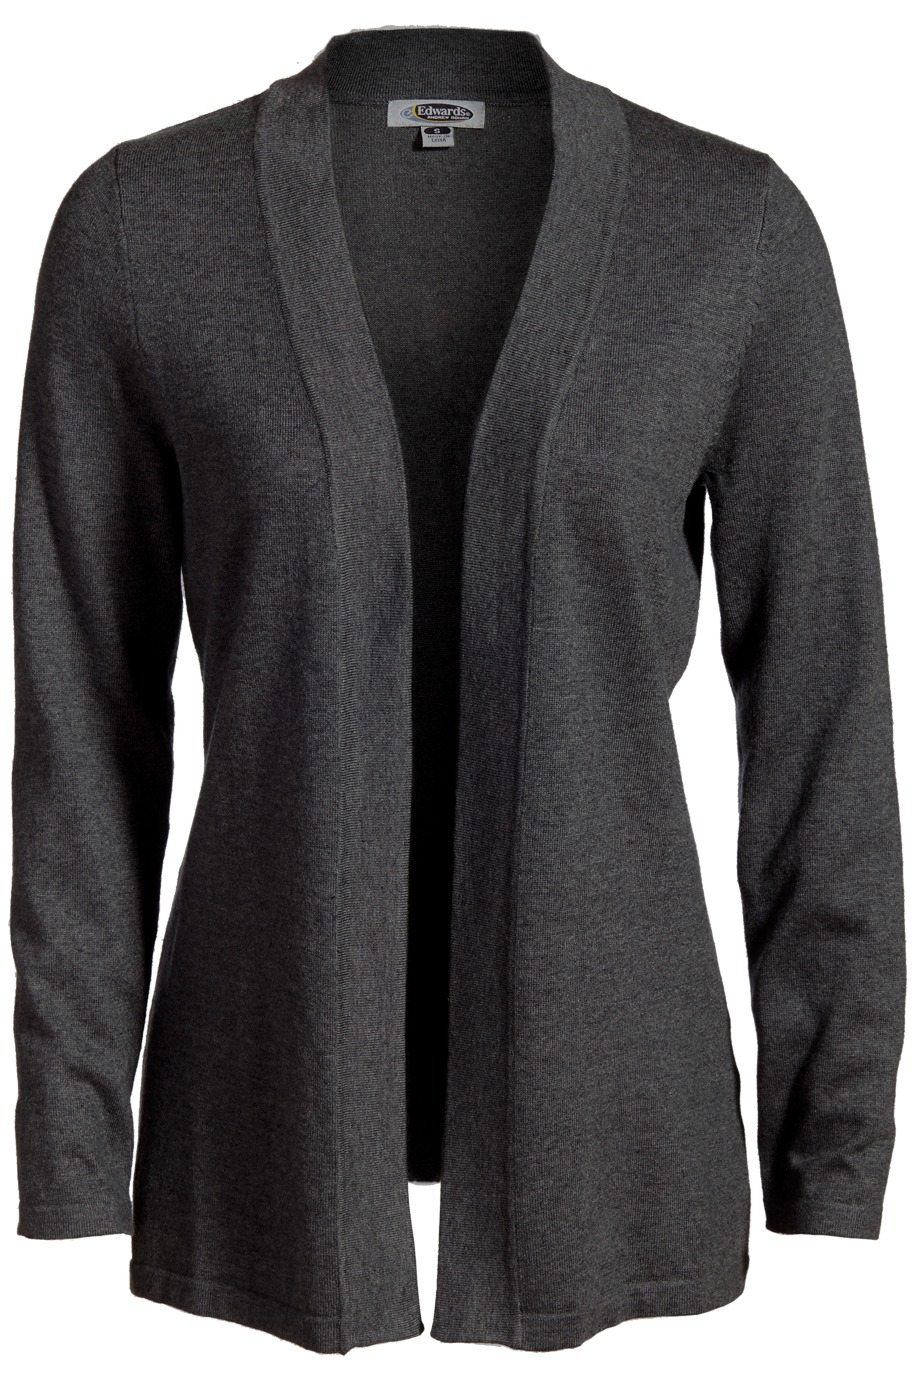 Edwards Garment 7056 - Women's Open Front Cardigan $24.56 - Sweater